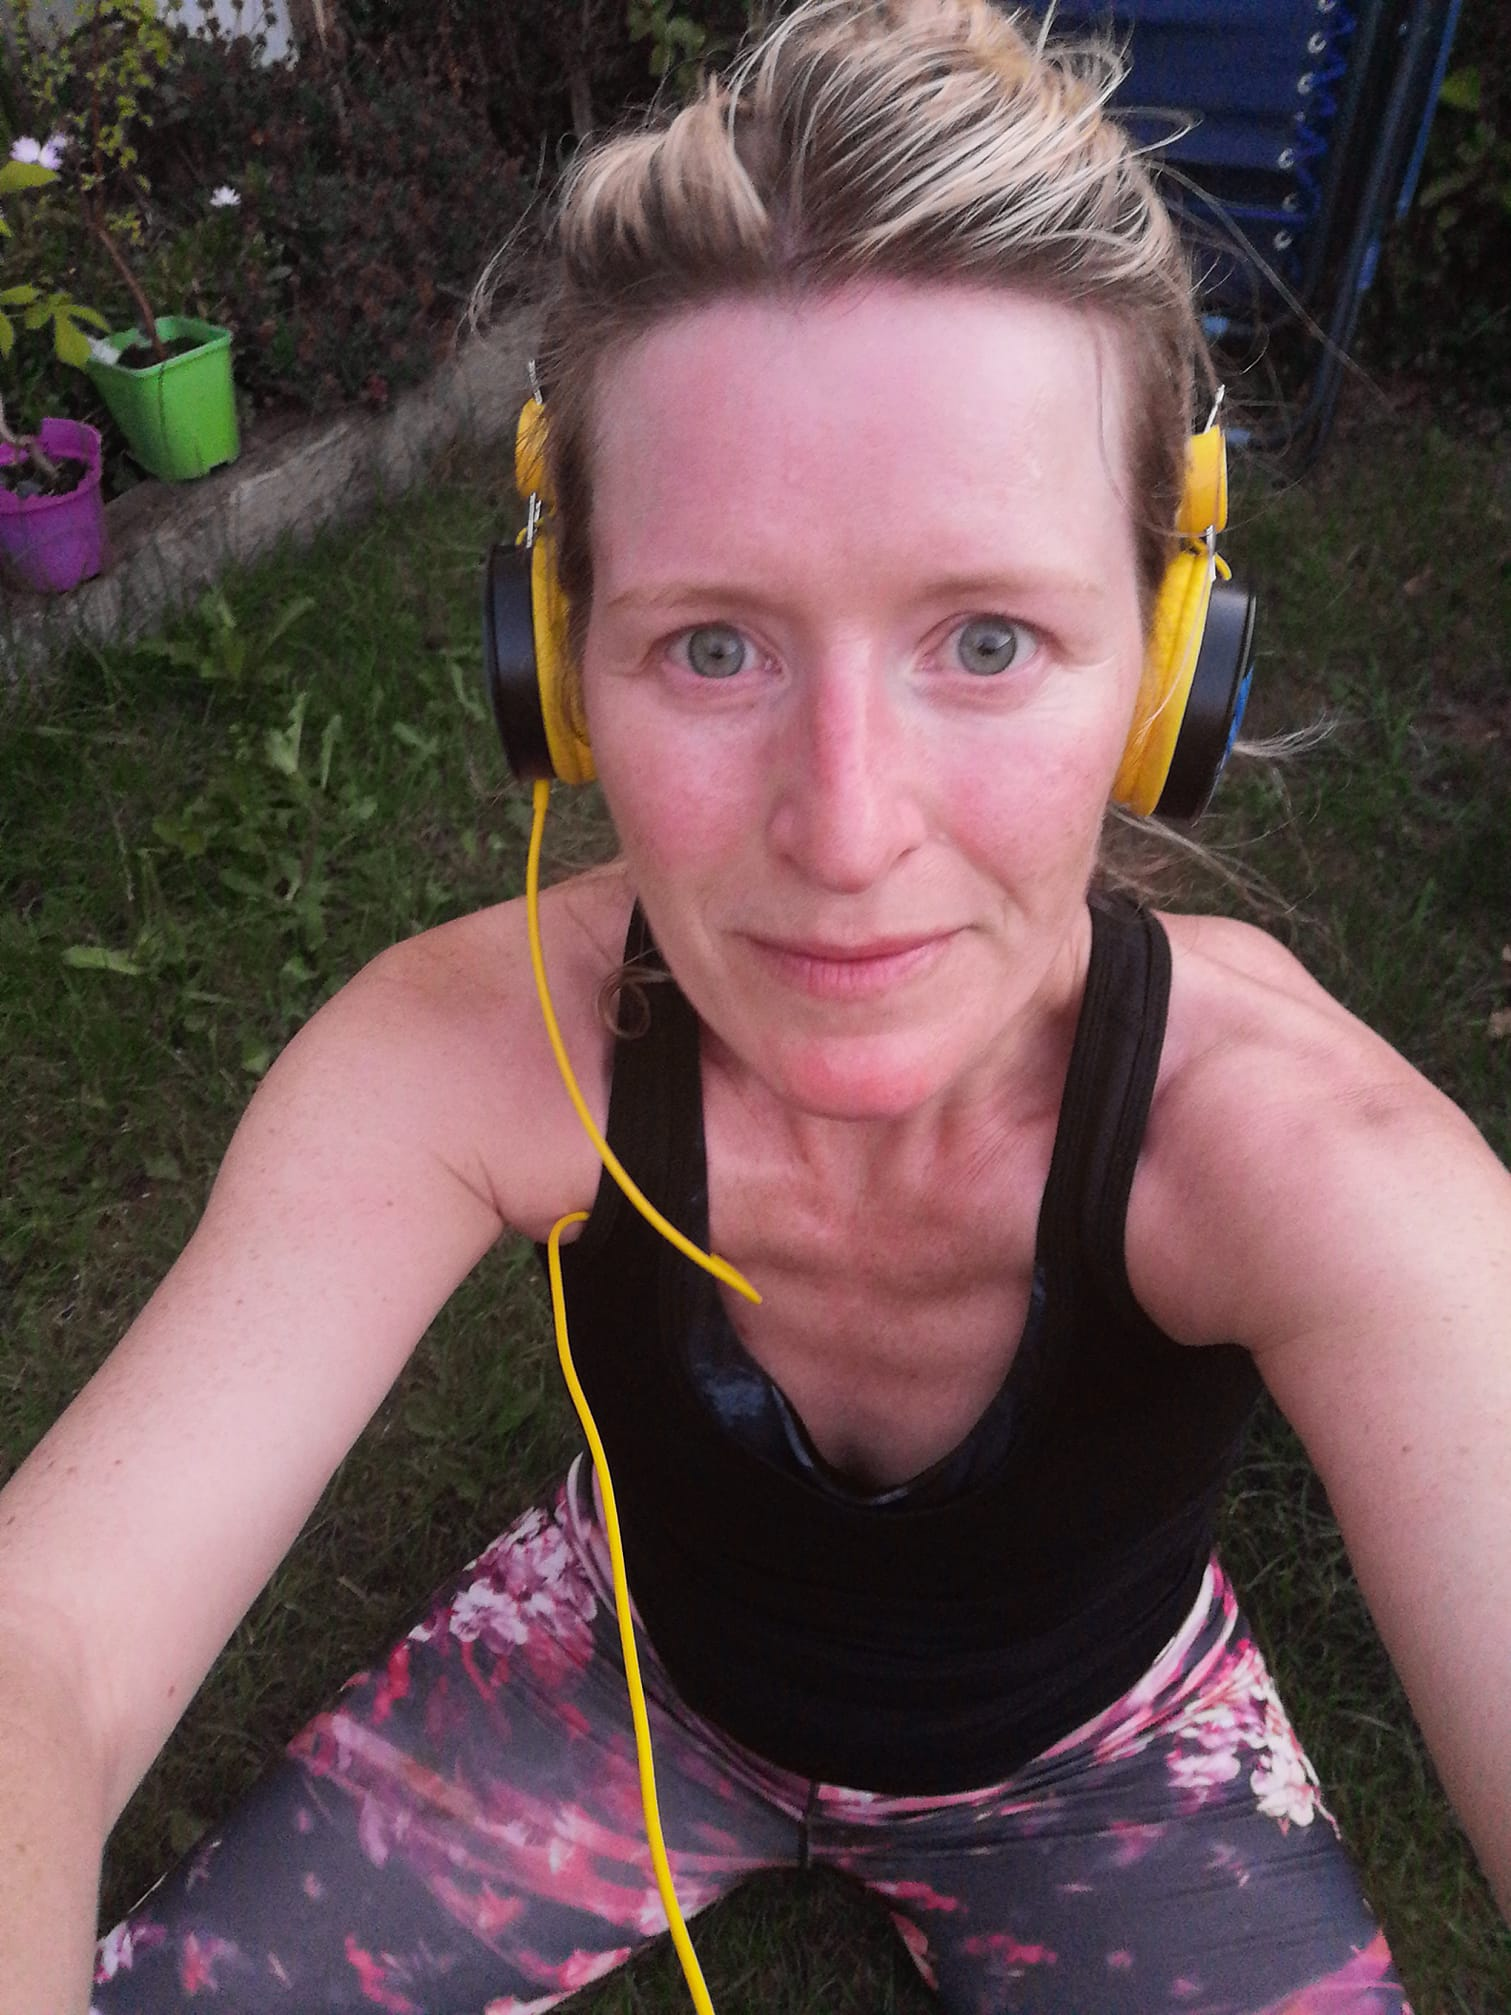 A woman taking a selfie post-fundraising run with yellow headphones.